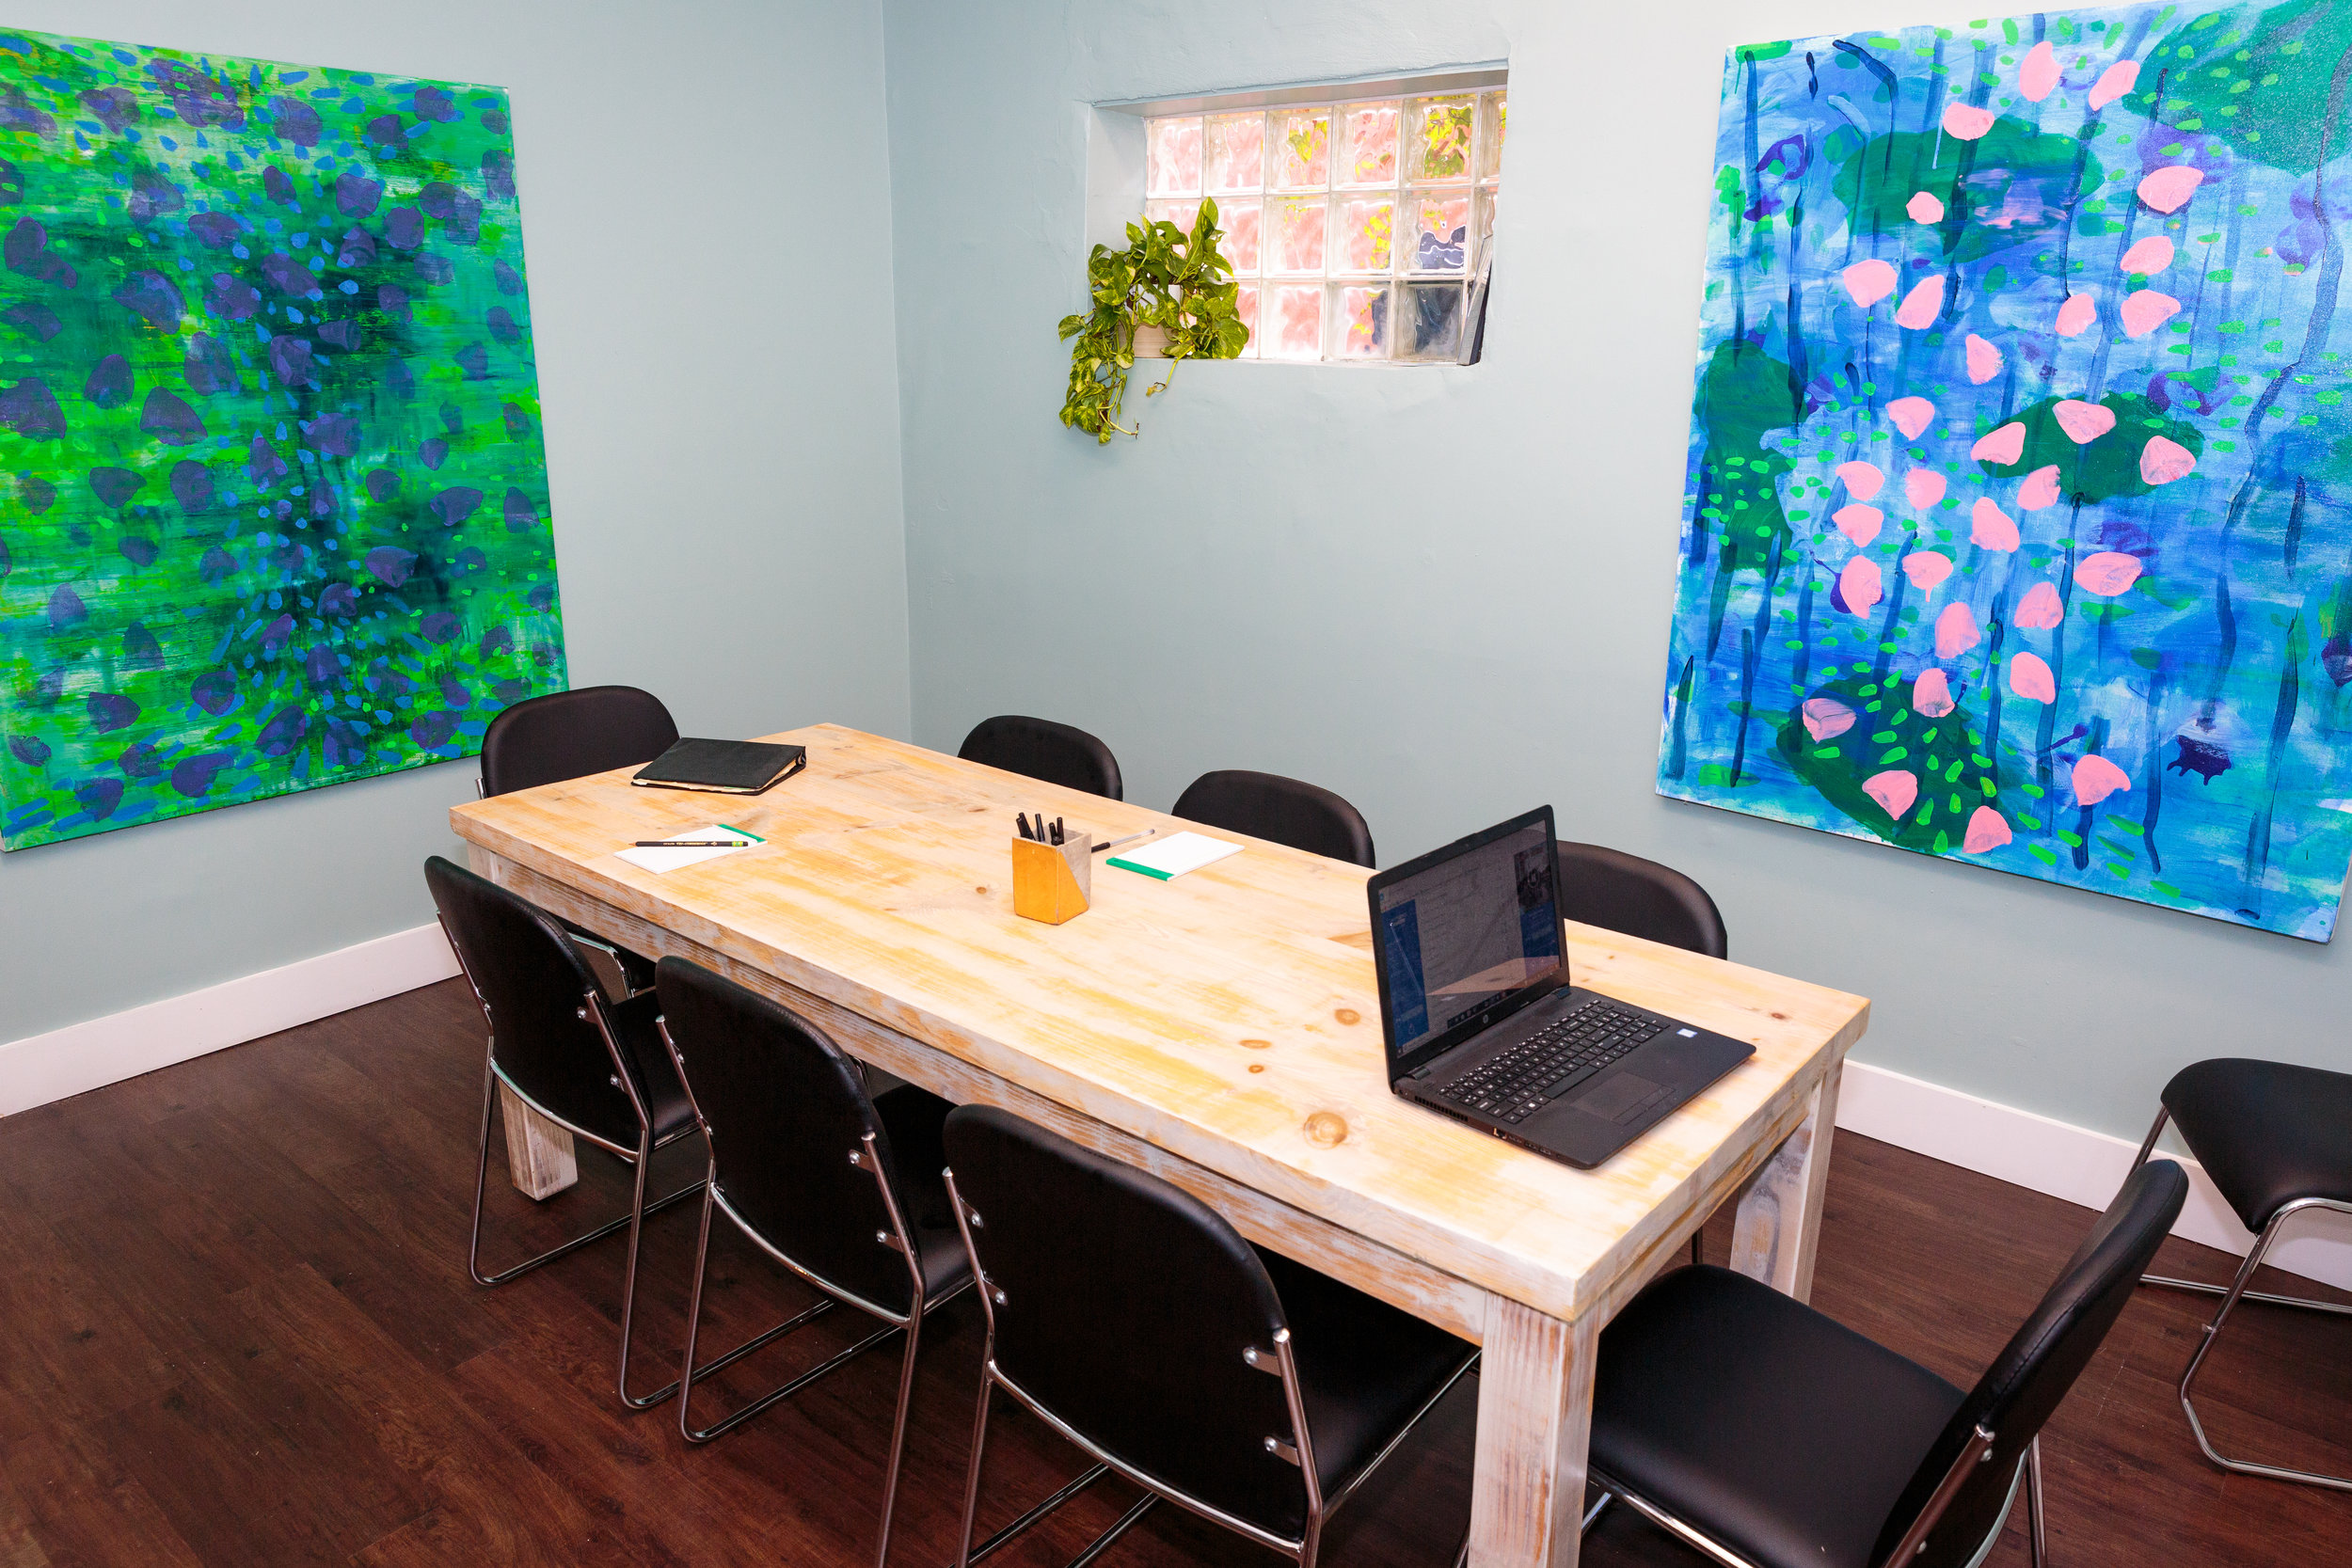 With a whiteboard, donuts, coffee, and seating for 8, this is the most comfortable place for your next meeting